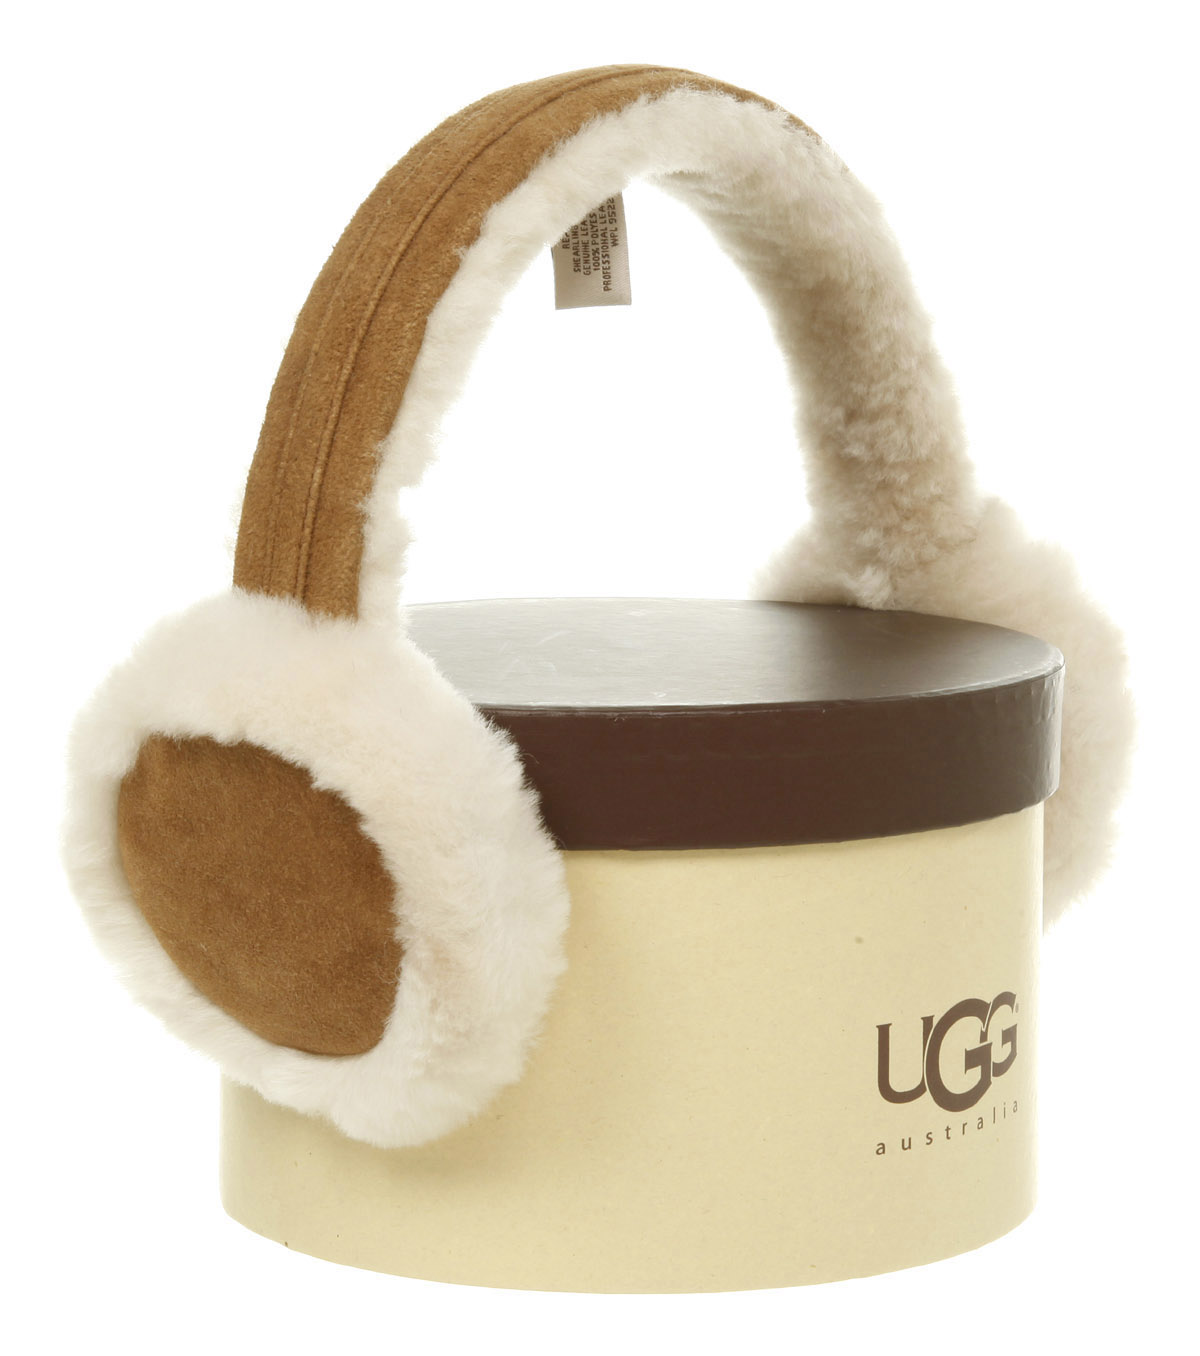 dca150173ce15 UGG Ear Muffs Chestnut in Brown - Lyst